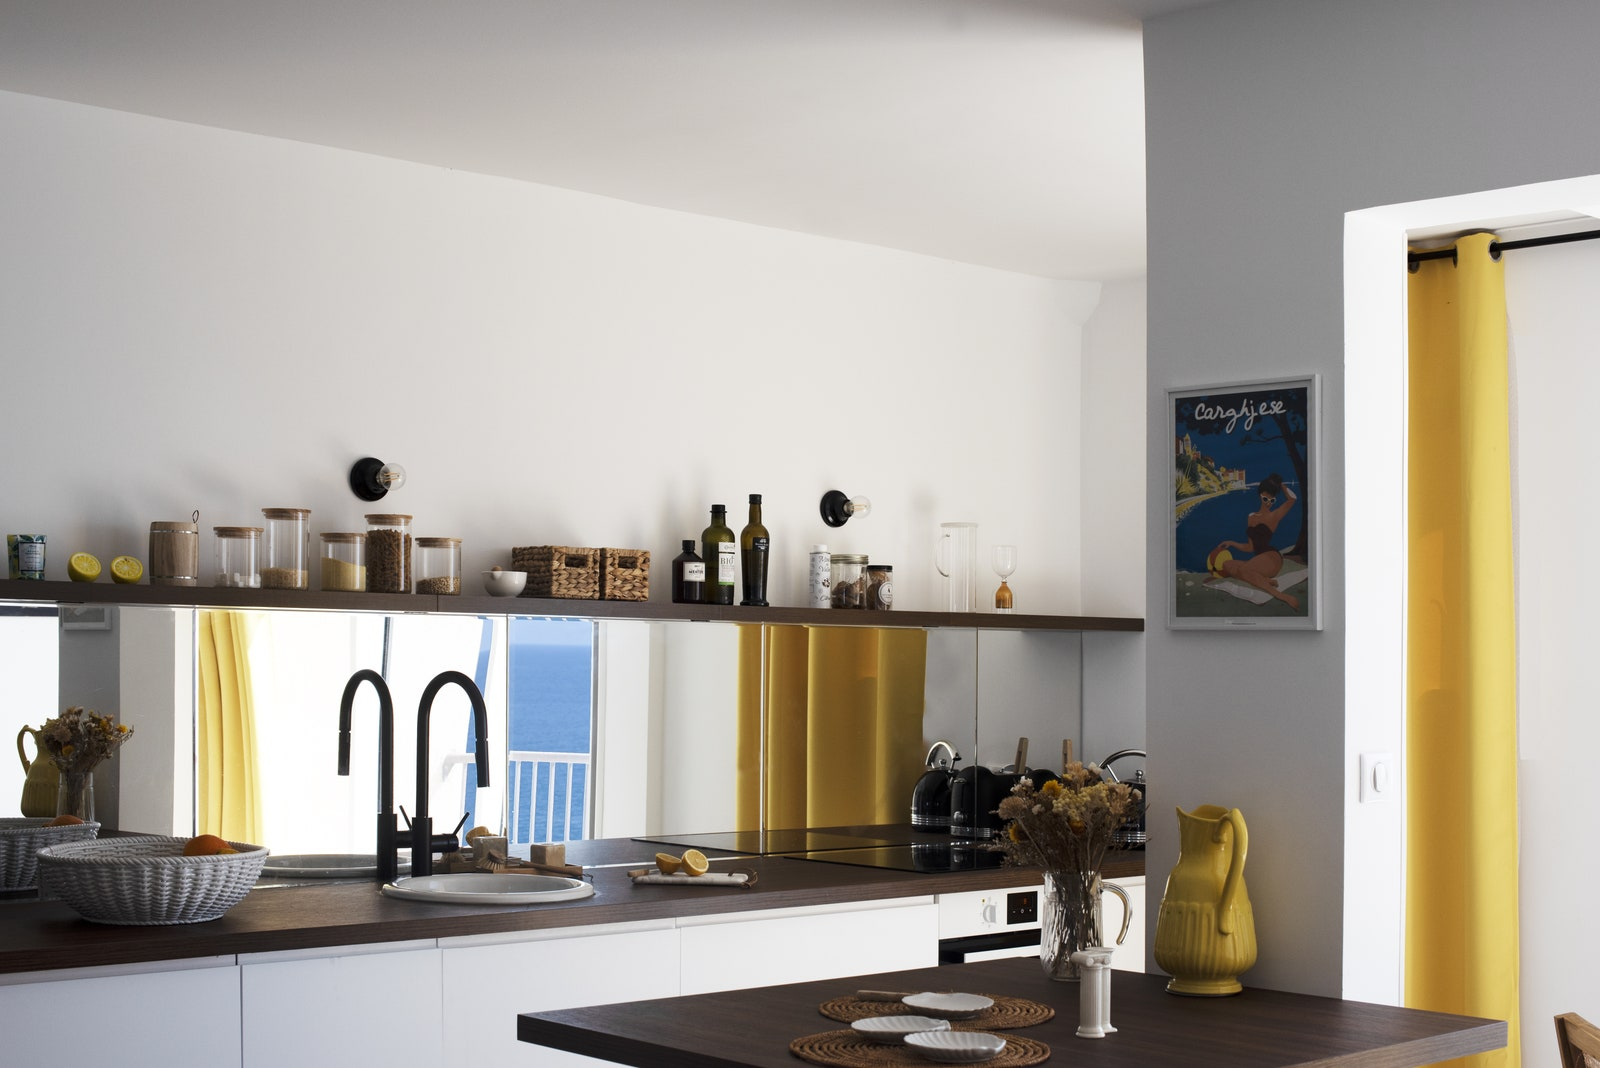 White base units covered in a mirrored credenza occupies the entire kitchen wall.  Worktop and shelf...